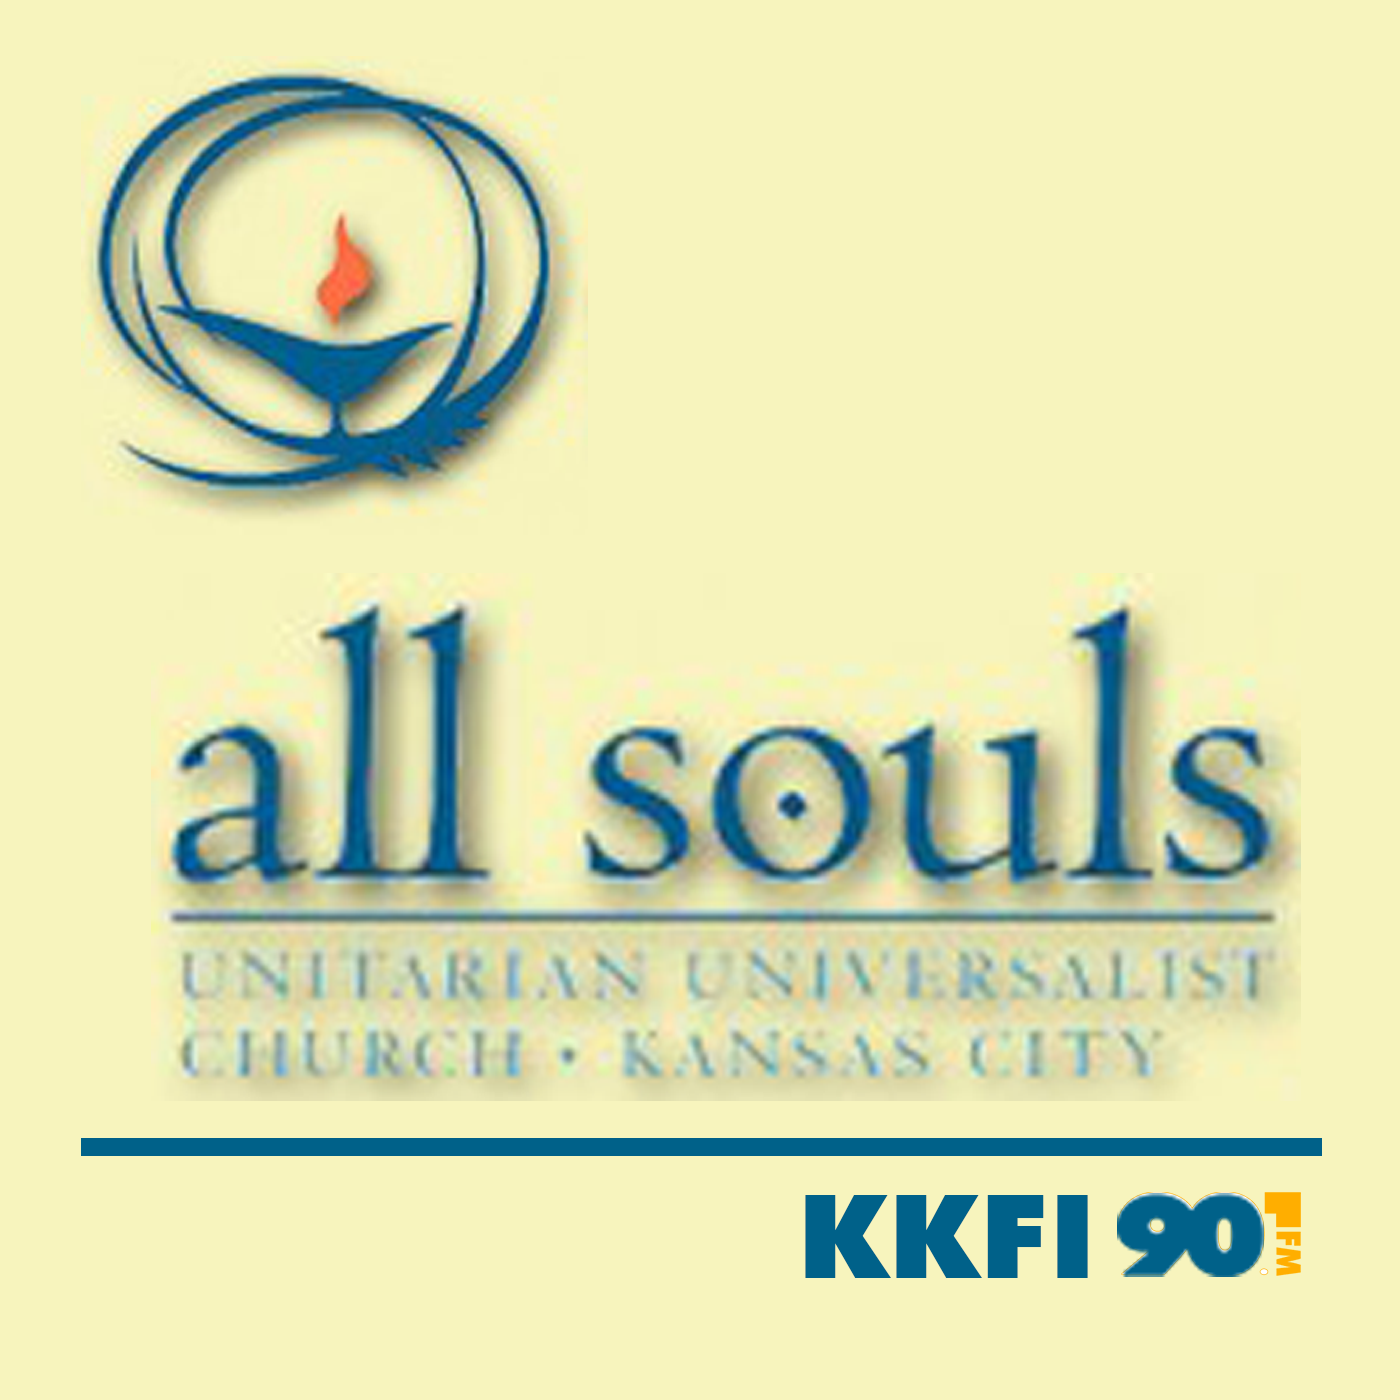 All Souls Forum